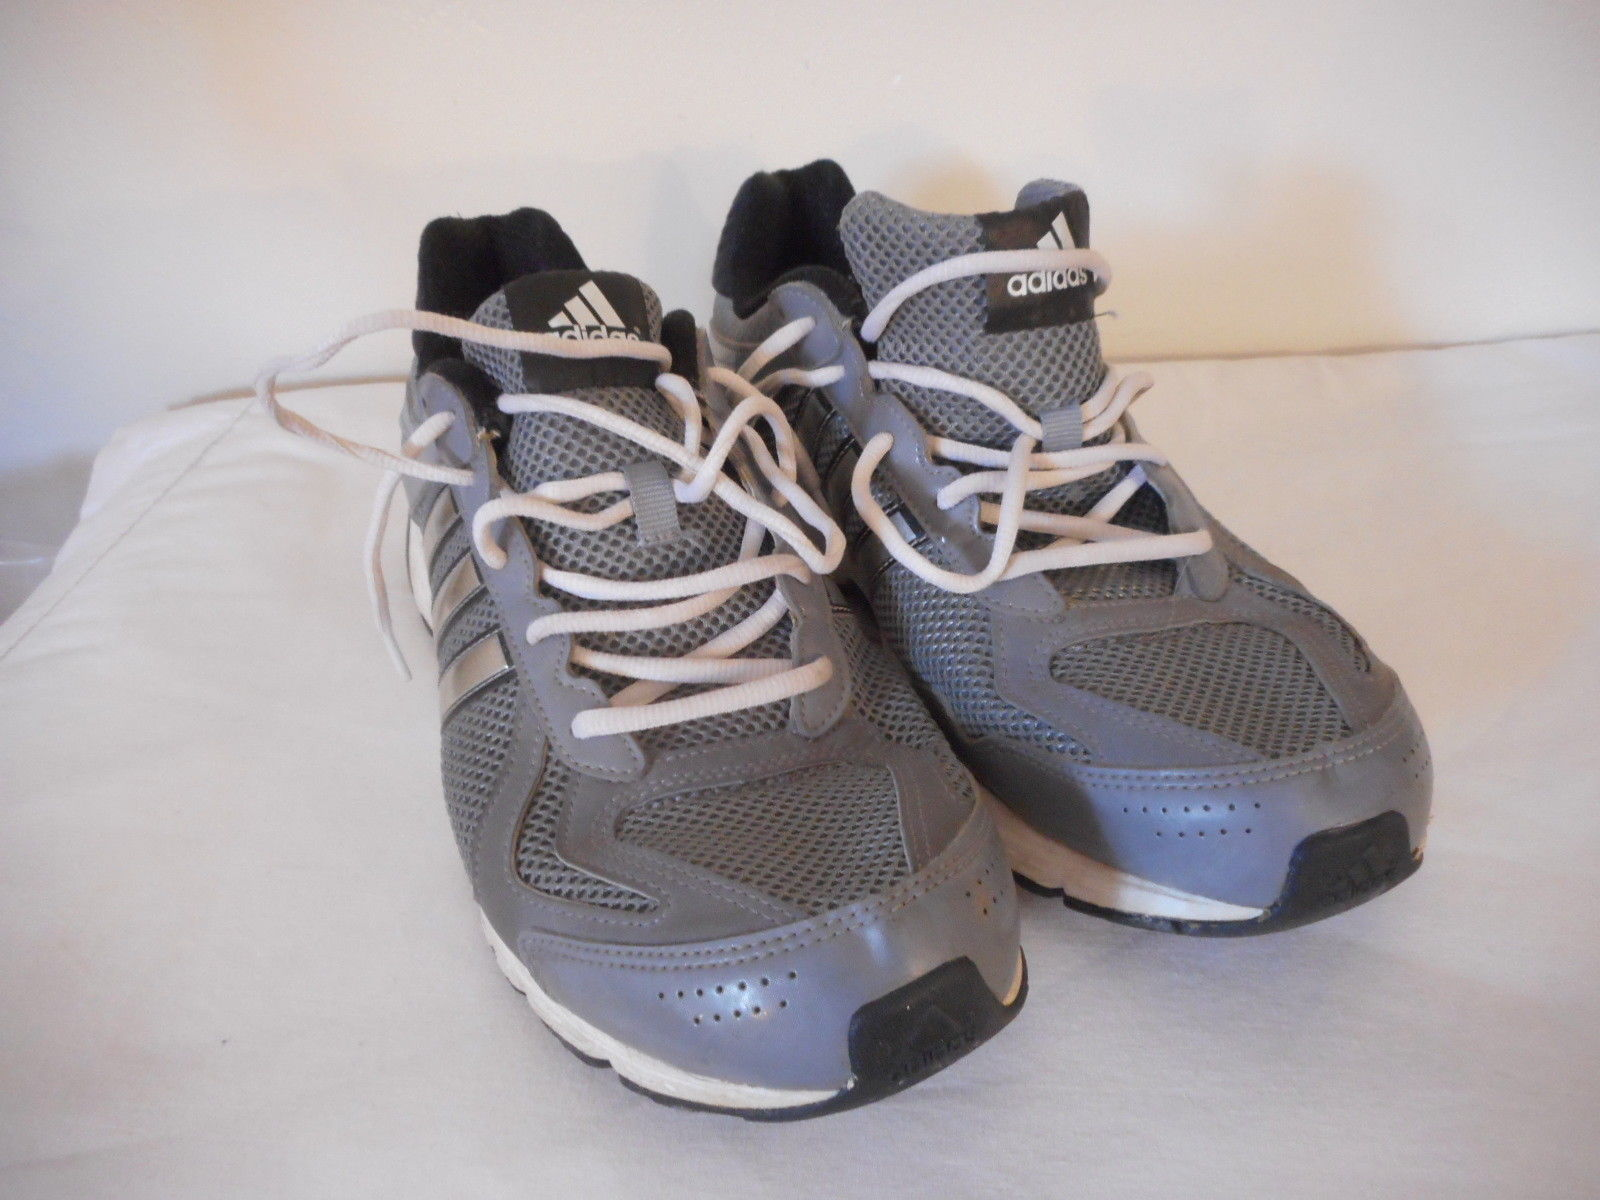 separation shoes 3d182 c28b6 Mens Sz 12 Adidas Shoe Grey Silver Athletic and 50 similar items. 57